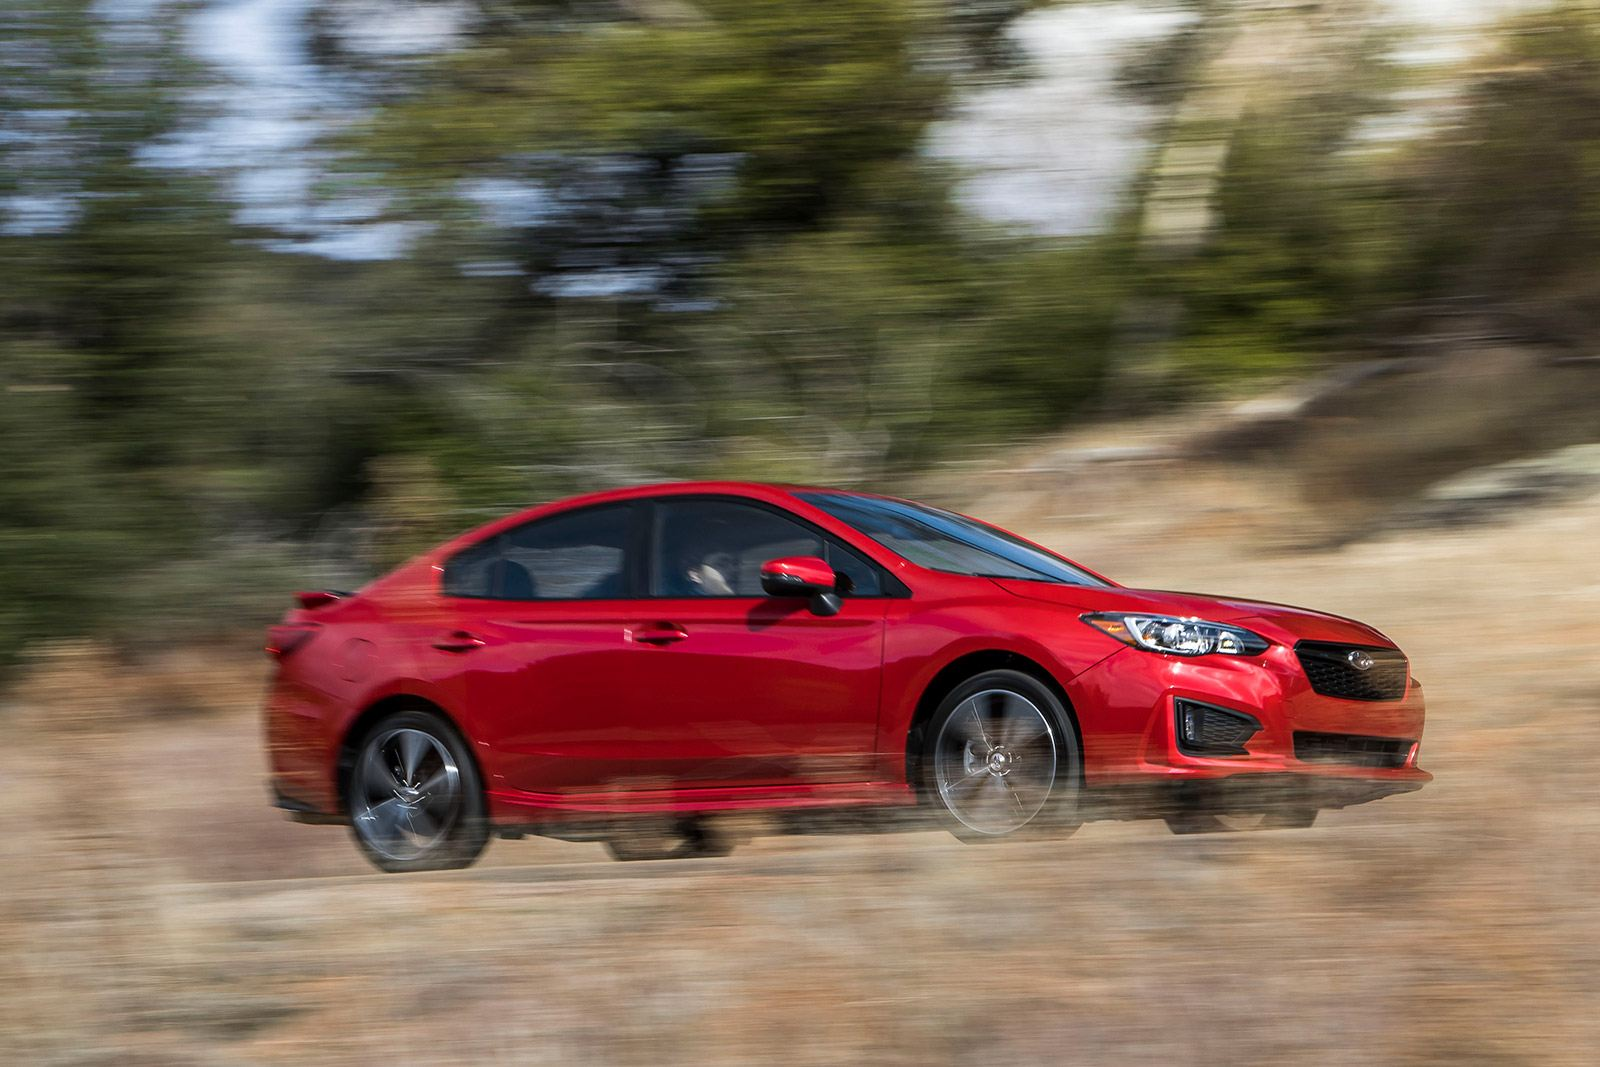 Top 15 Safest Cars Of 2018 According To IIHS » AutoGuide